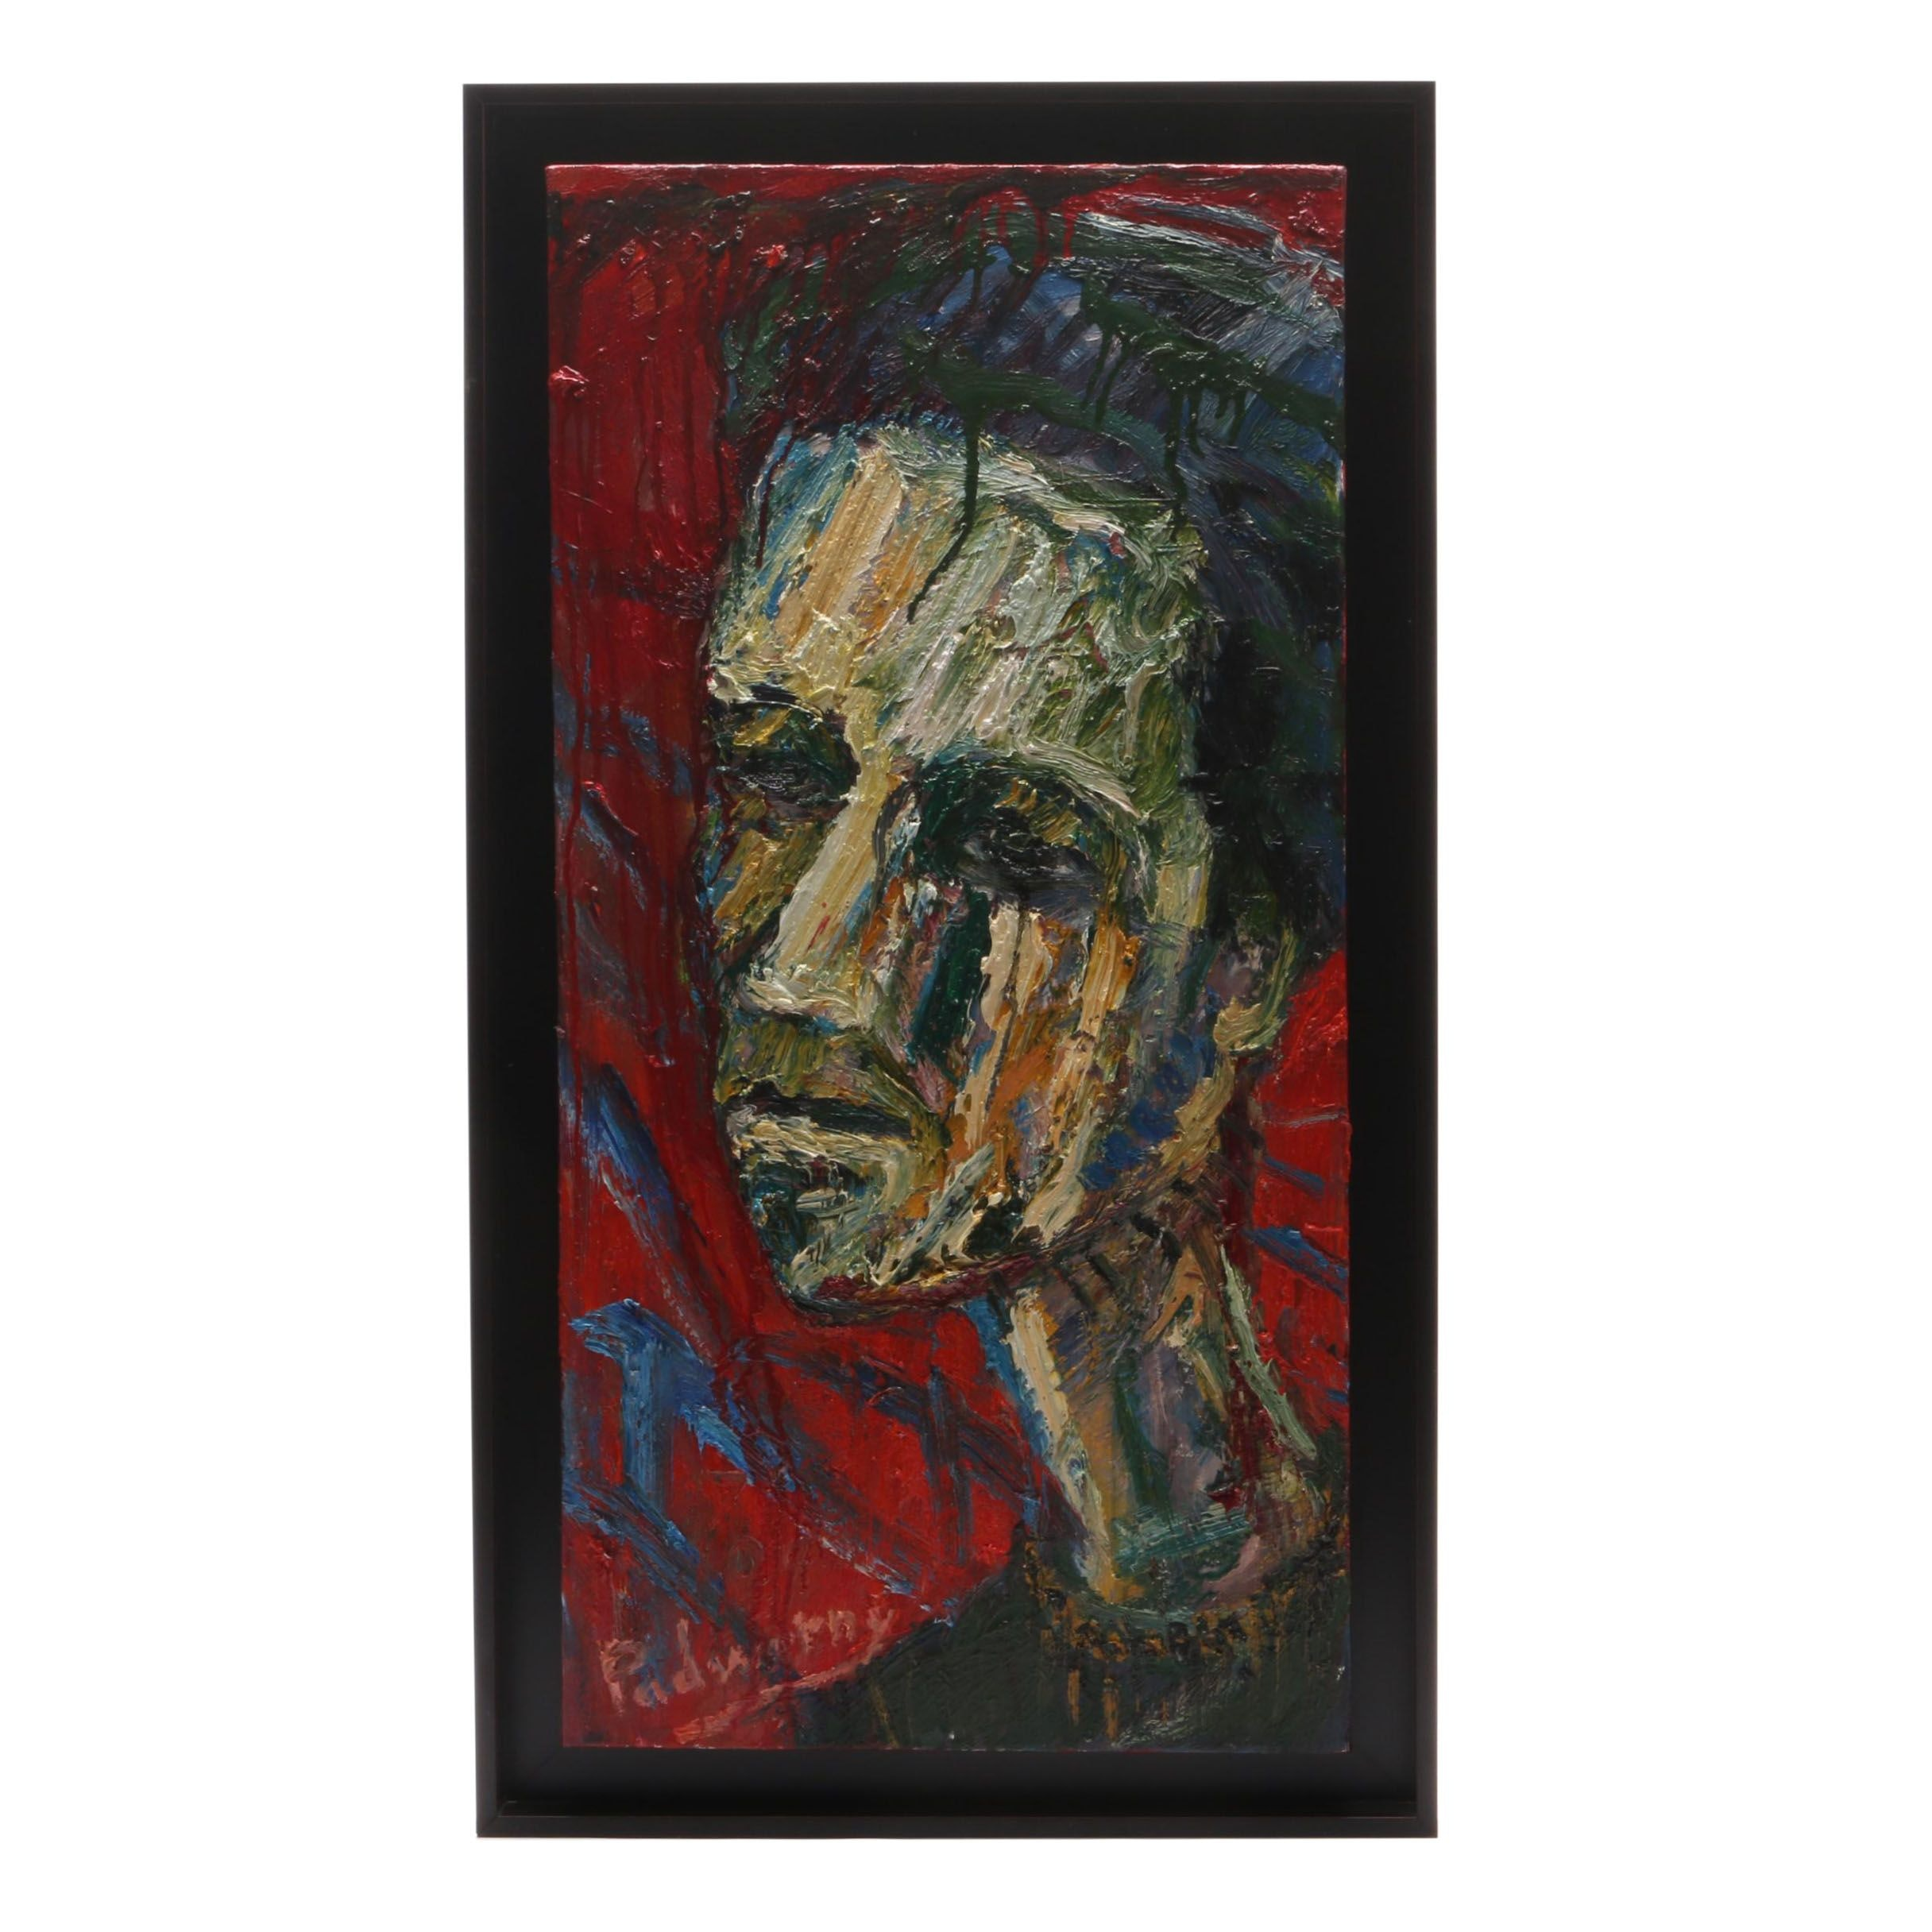 David Padworny Abstract Expressionist Style Portrait